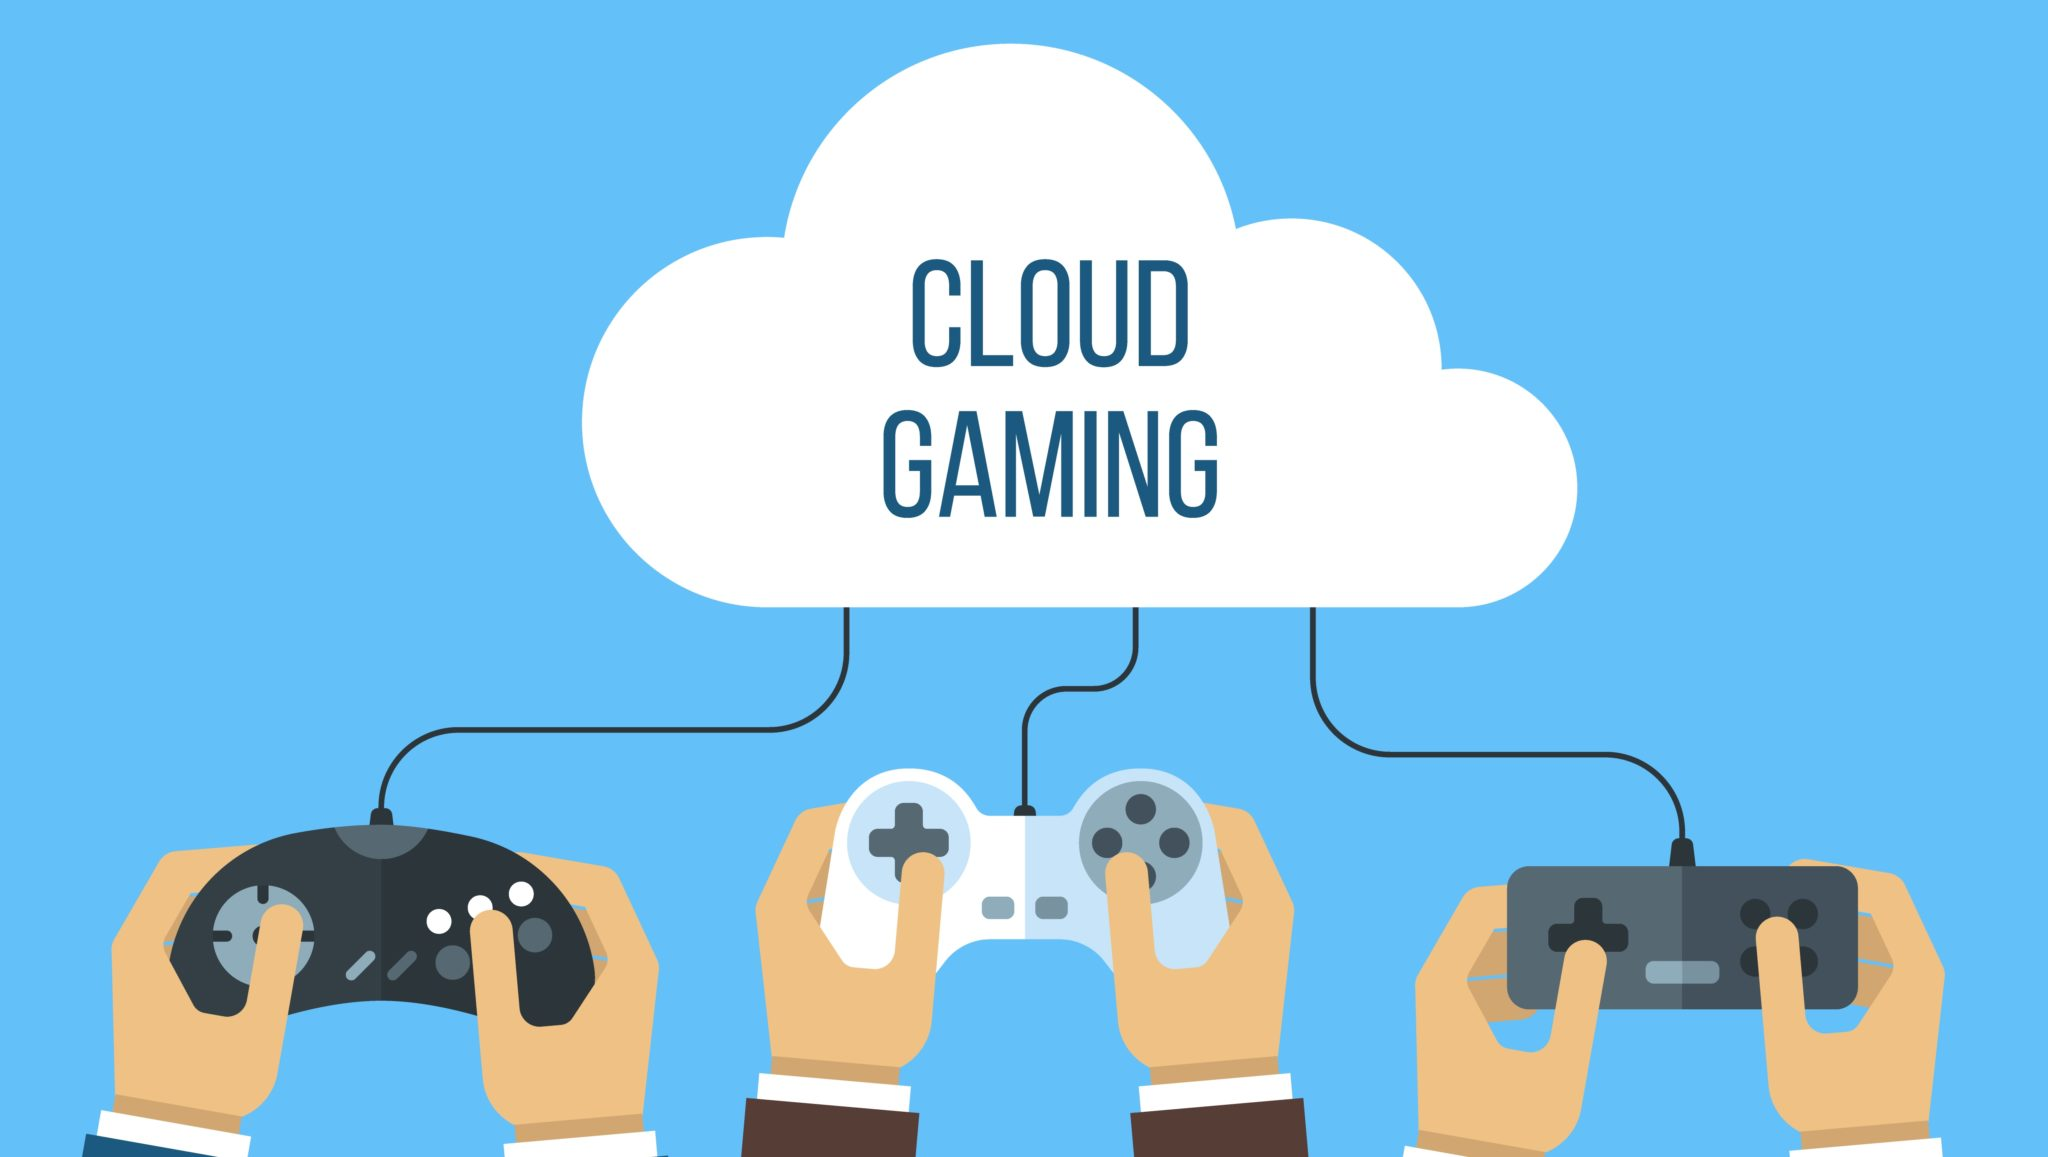 Cloud Gaming technology